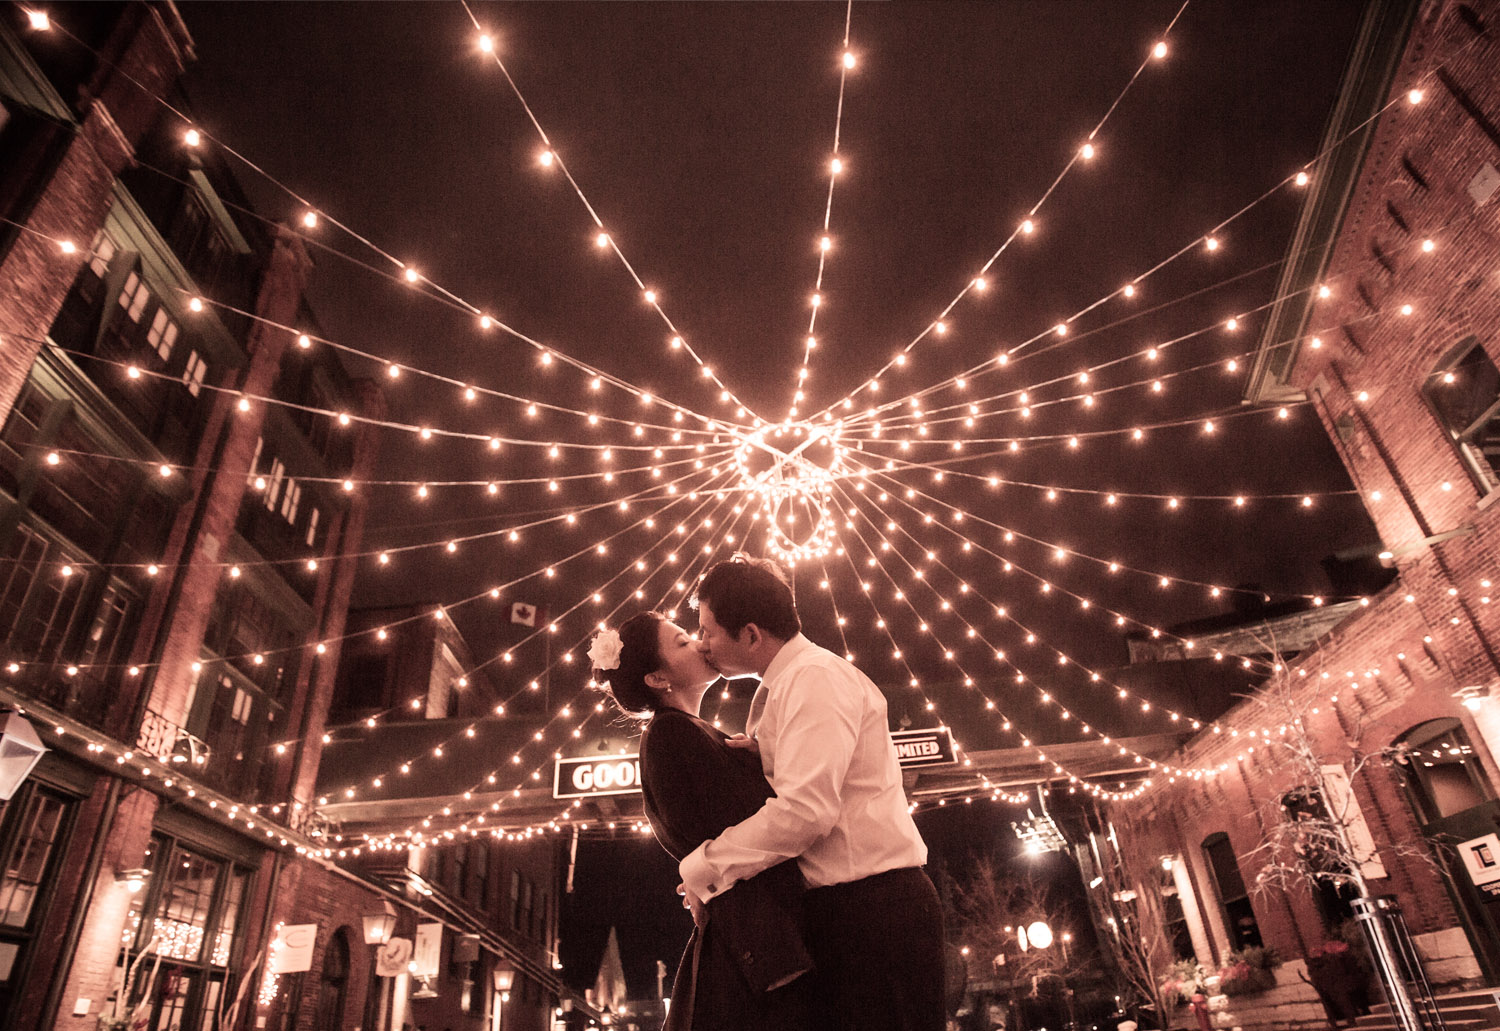 CONGRATULATIONS James & Hyuna  A dreary cold winter day turned into an eclectic, engaging series of images that will be hard to top. January in Toronto's historic Distillery District was the photographic backdrop and playground for me, James, Hyuna and their closest friends. The cloudy day turned to cold night, but at no point could the wet and wonderful Canadian weather dampen our spirits. James and Hyuna you are wonderful couple and I had a blast taking your picture. A couple who truly loves each other create the best photographs, their genuine love shines through the image. It's more captivating and true than any artistic merit or photographic skill. Thank you both for choosing me as your photographer it was wonderful to be a witness.  -J.B.